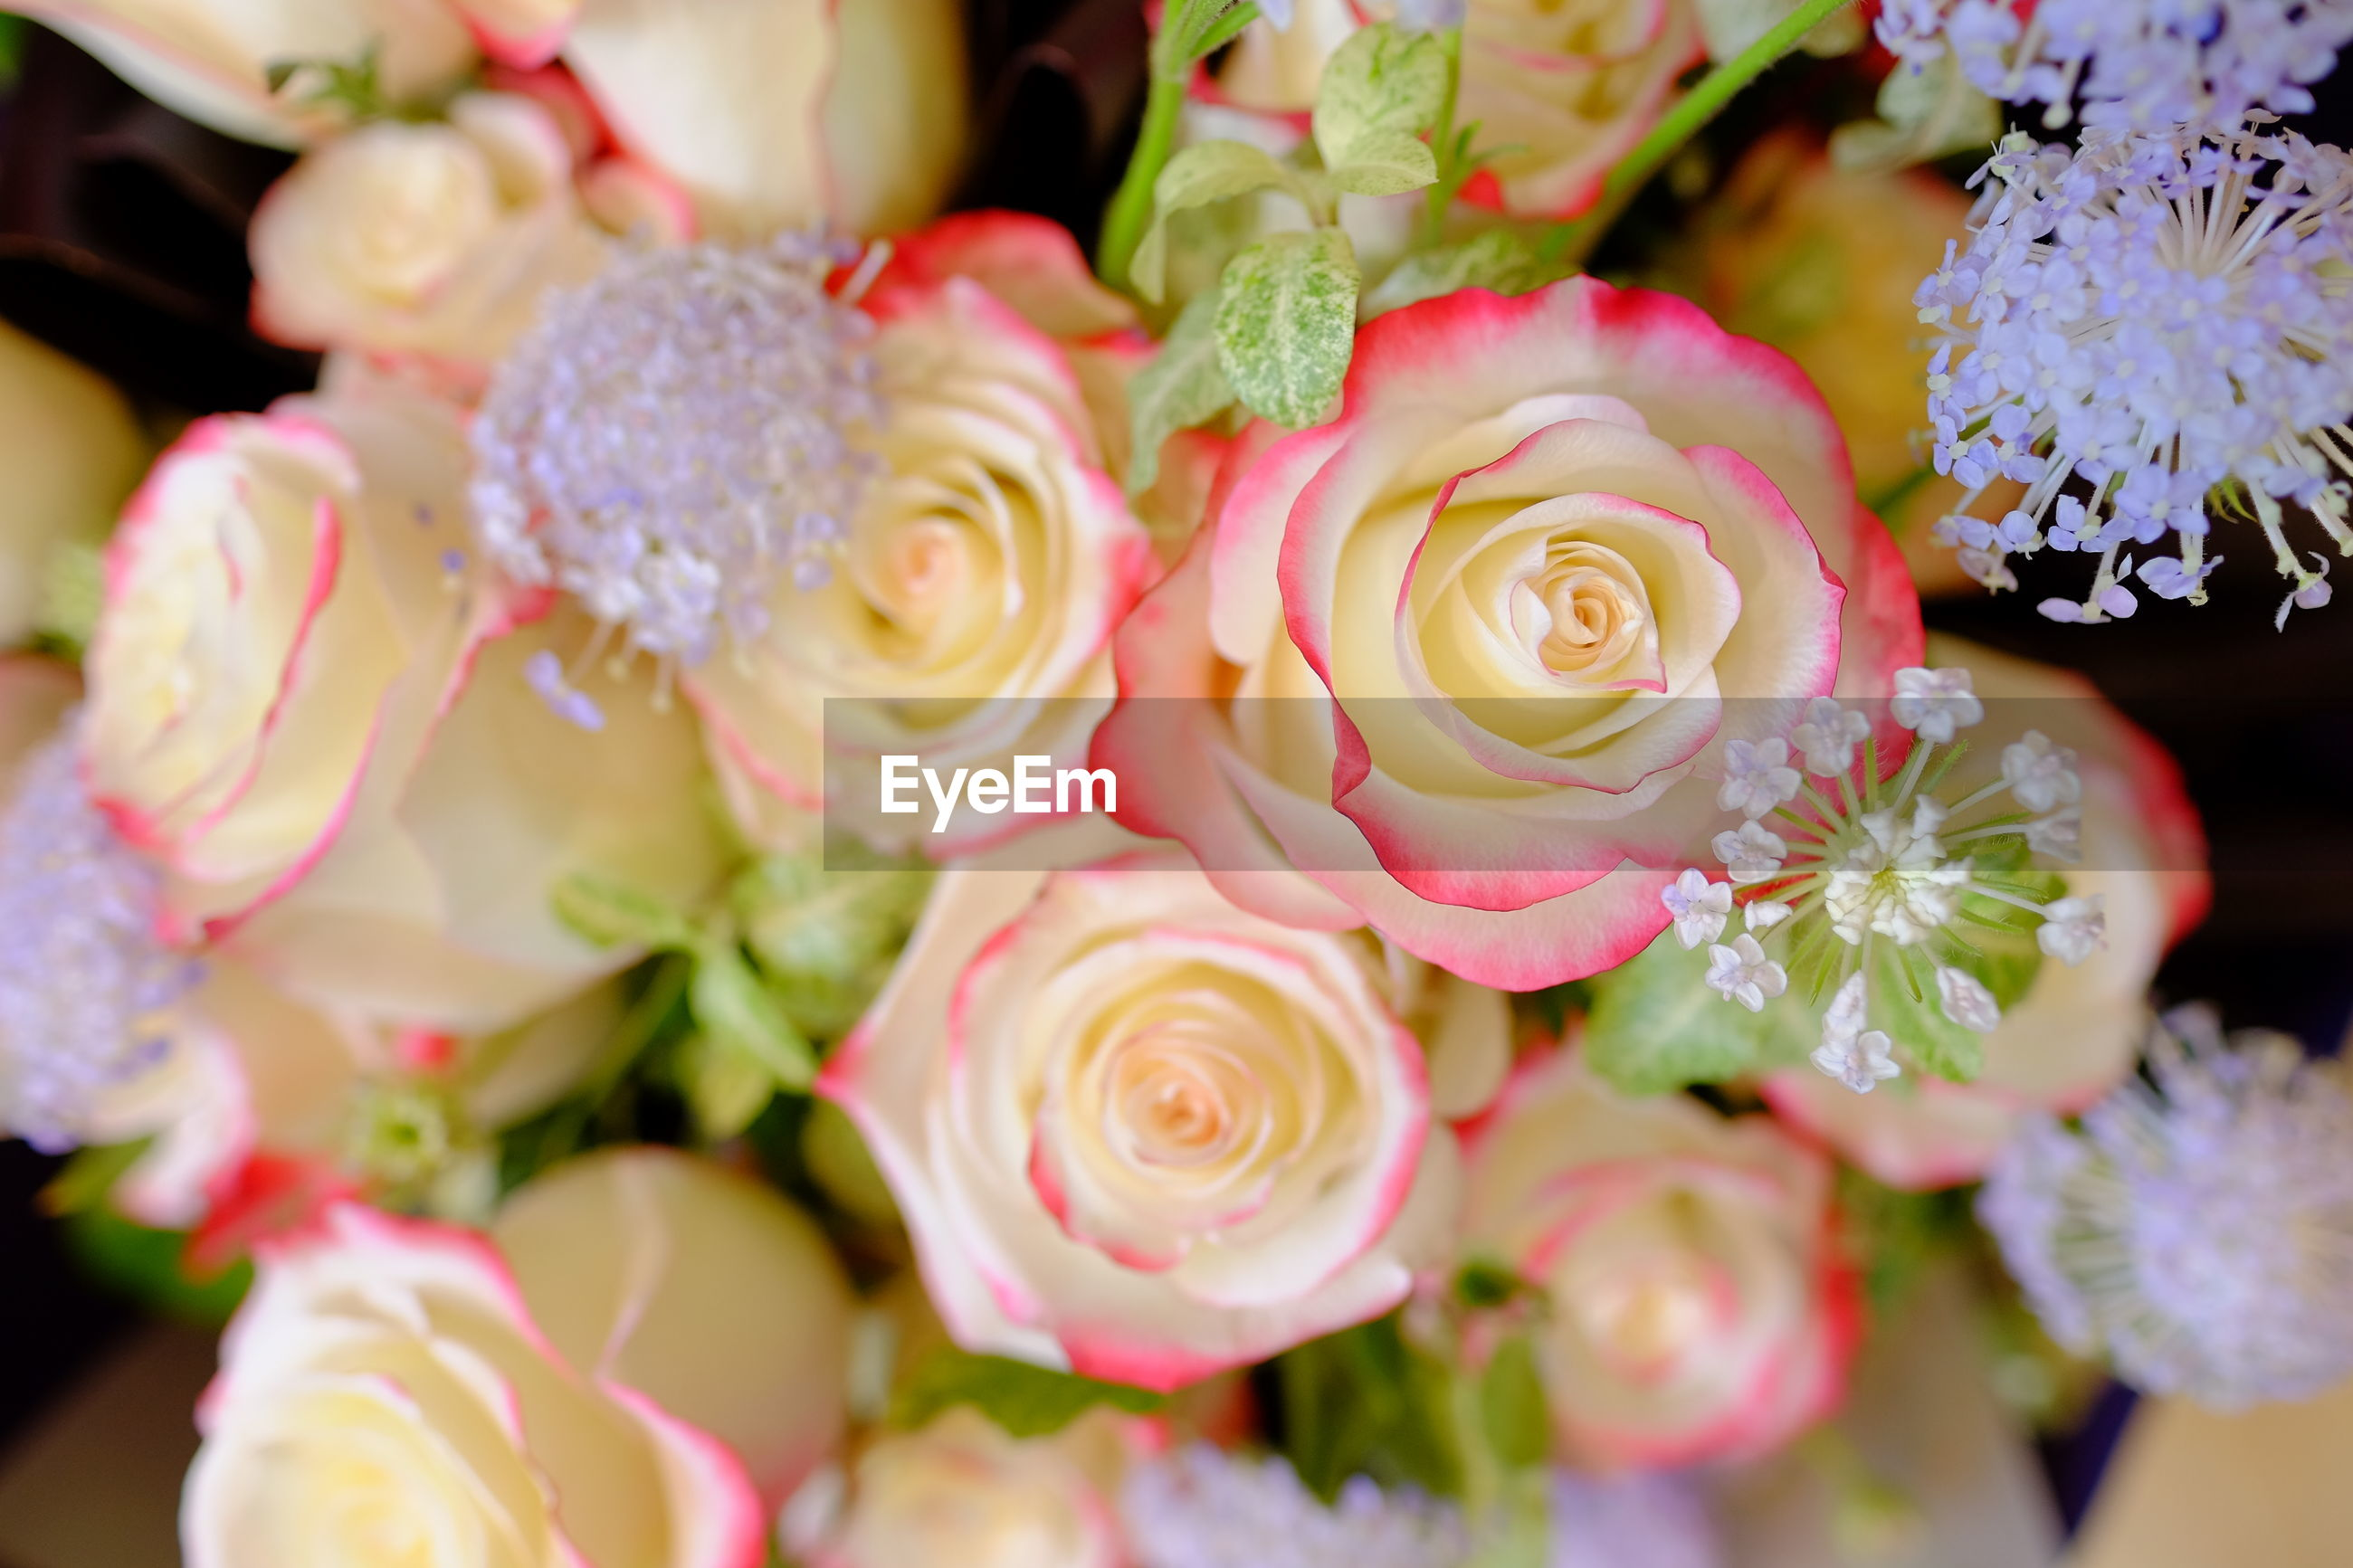 CLOSE-UP OF BOUQUET OF PINK ROSES